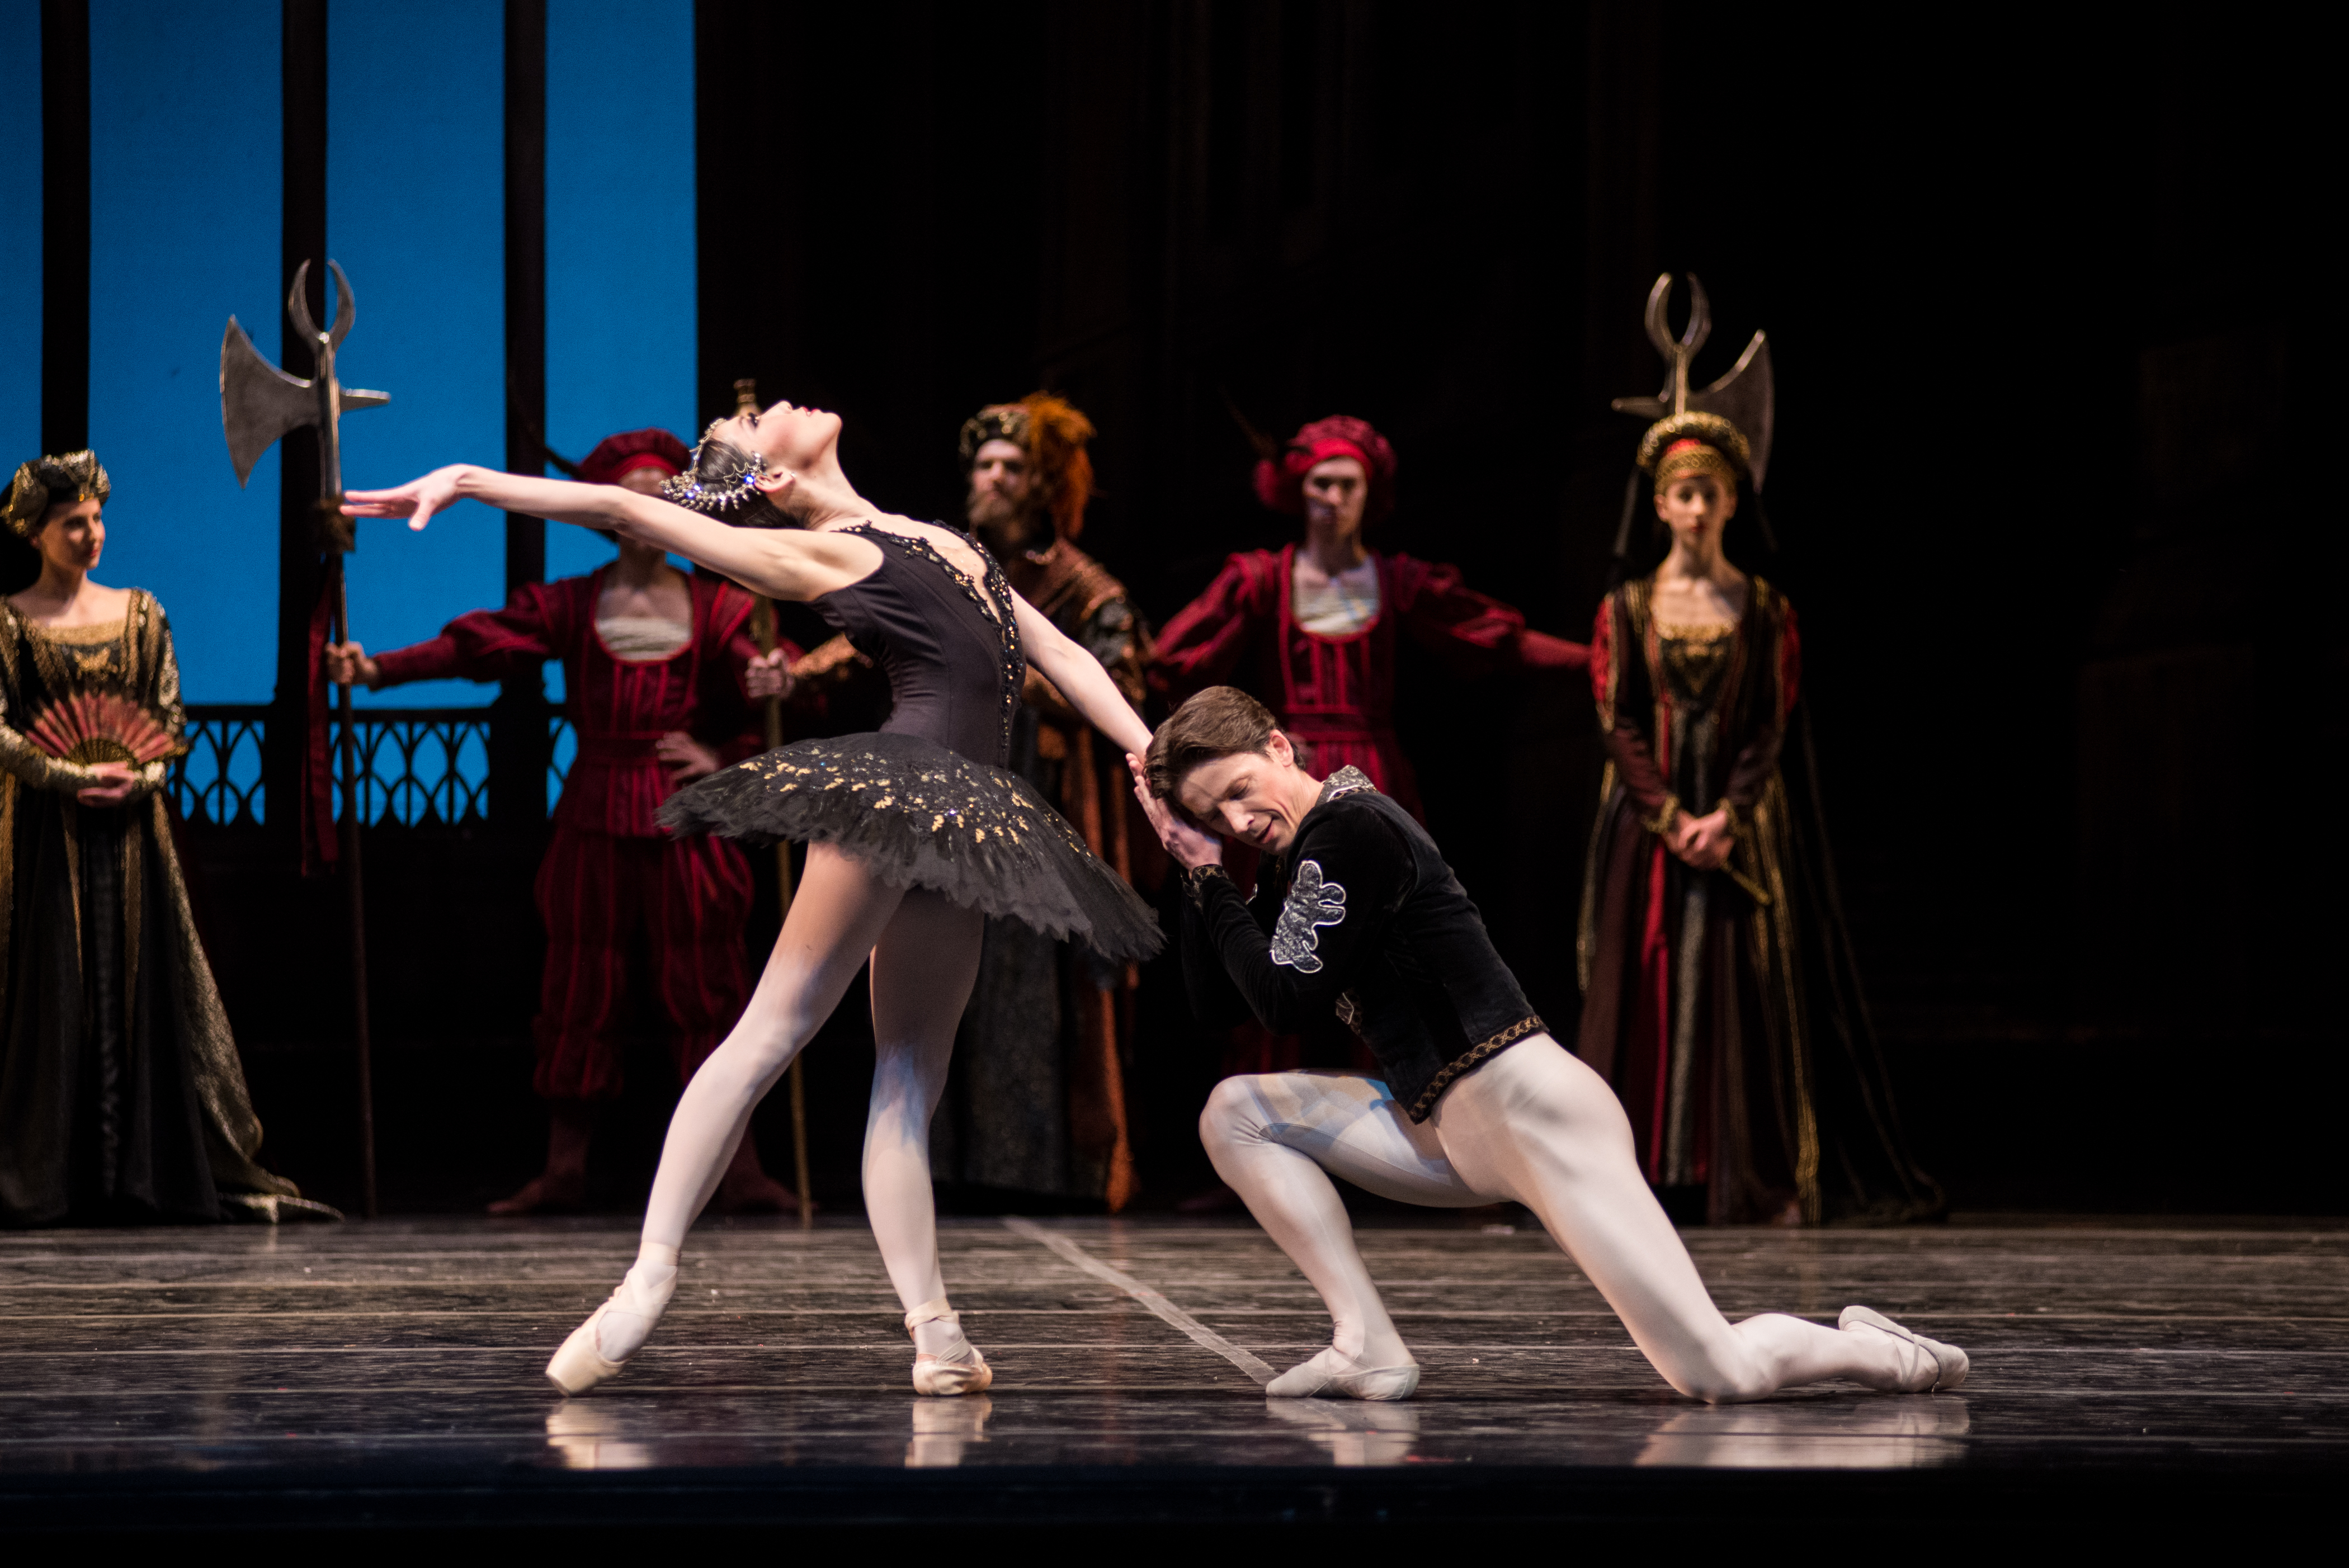 Soloists Yayoi Ban and Dmitri Dovgoselets in Swan Lake, 2015; Photo by Samanta Katz